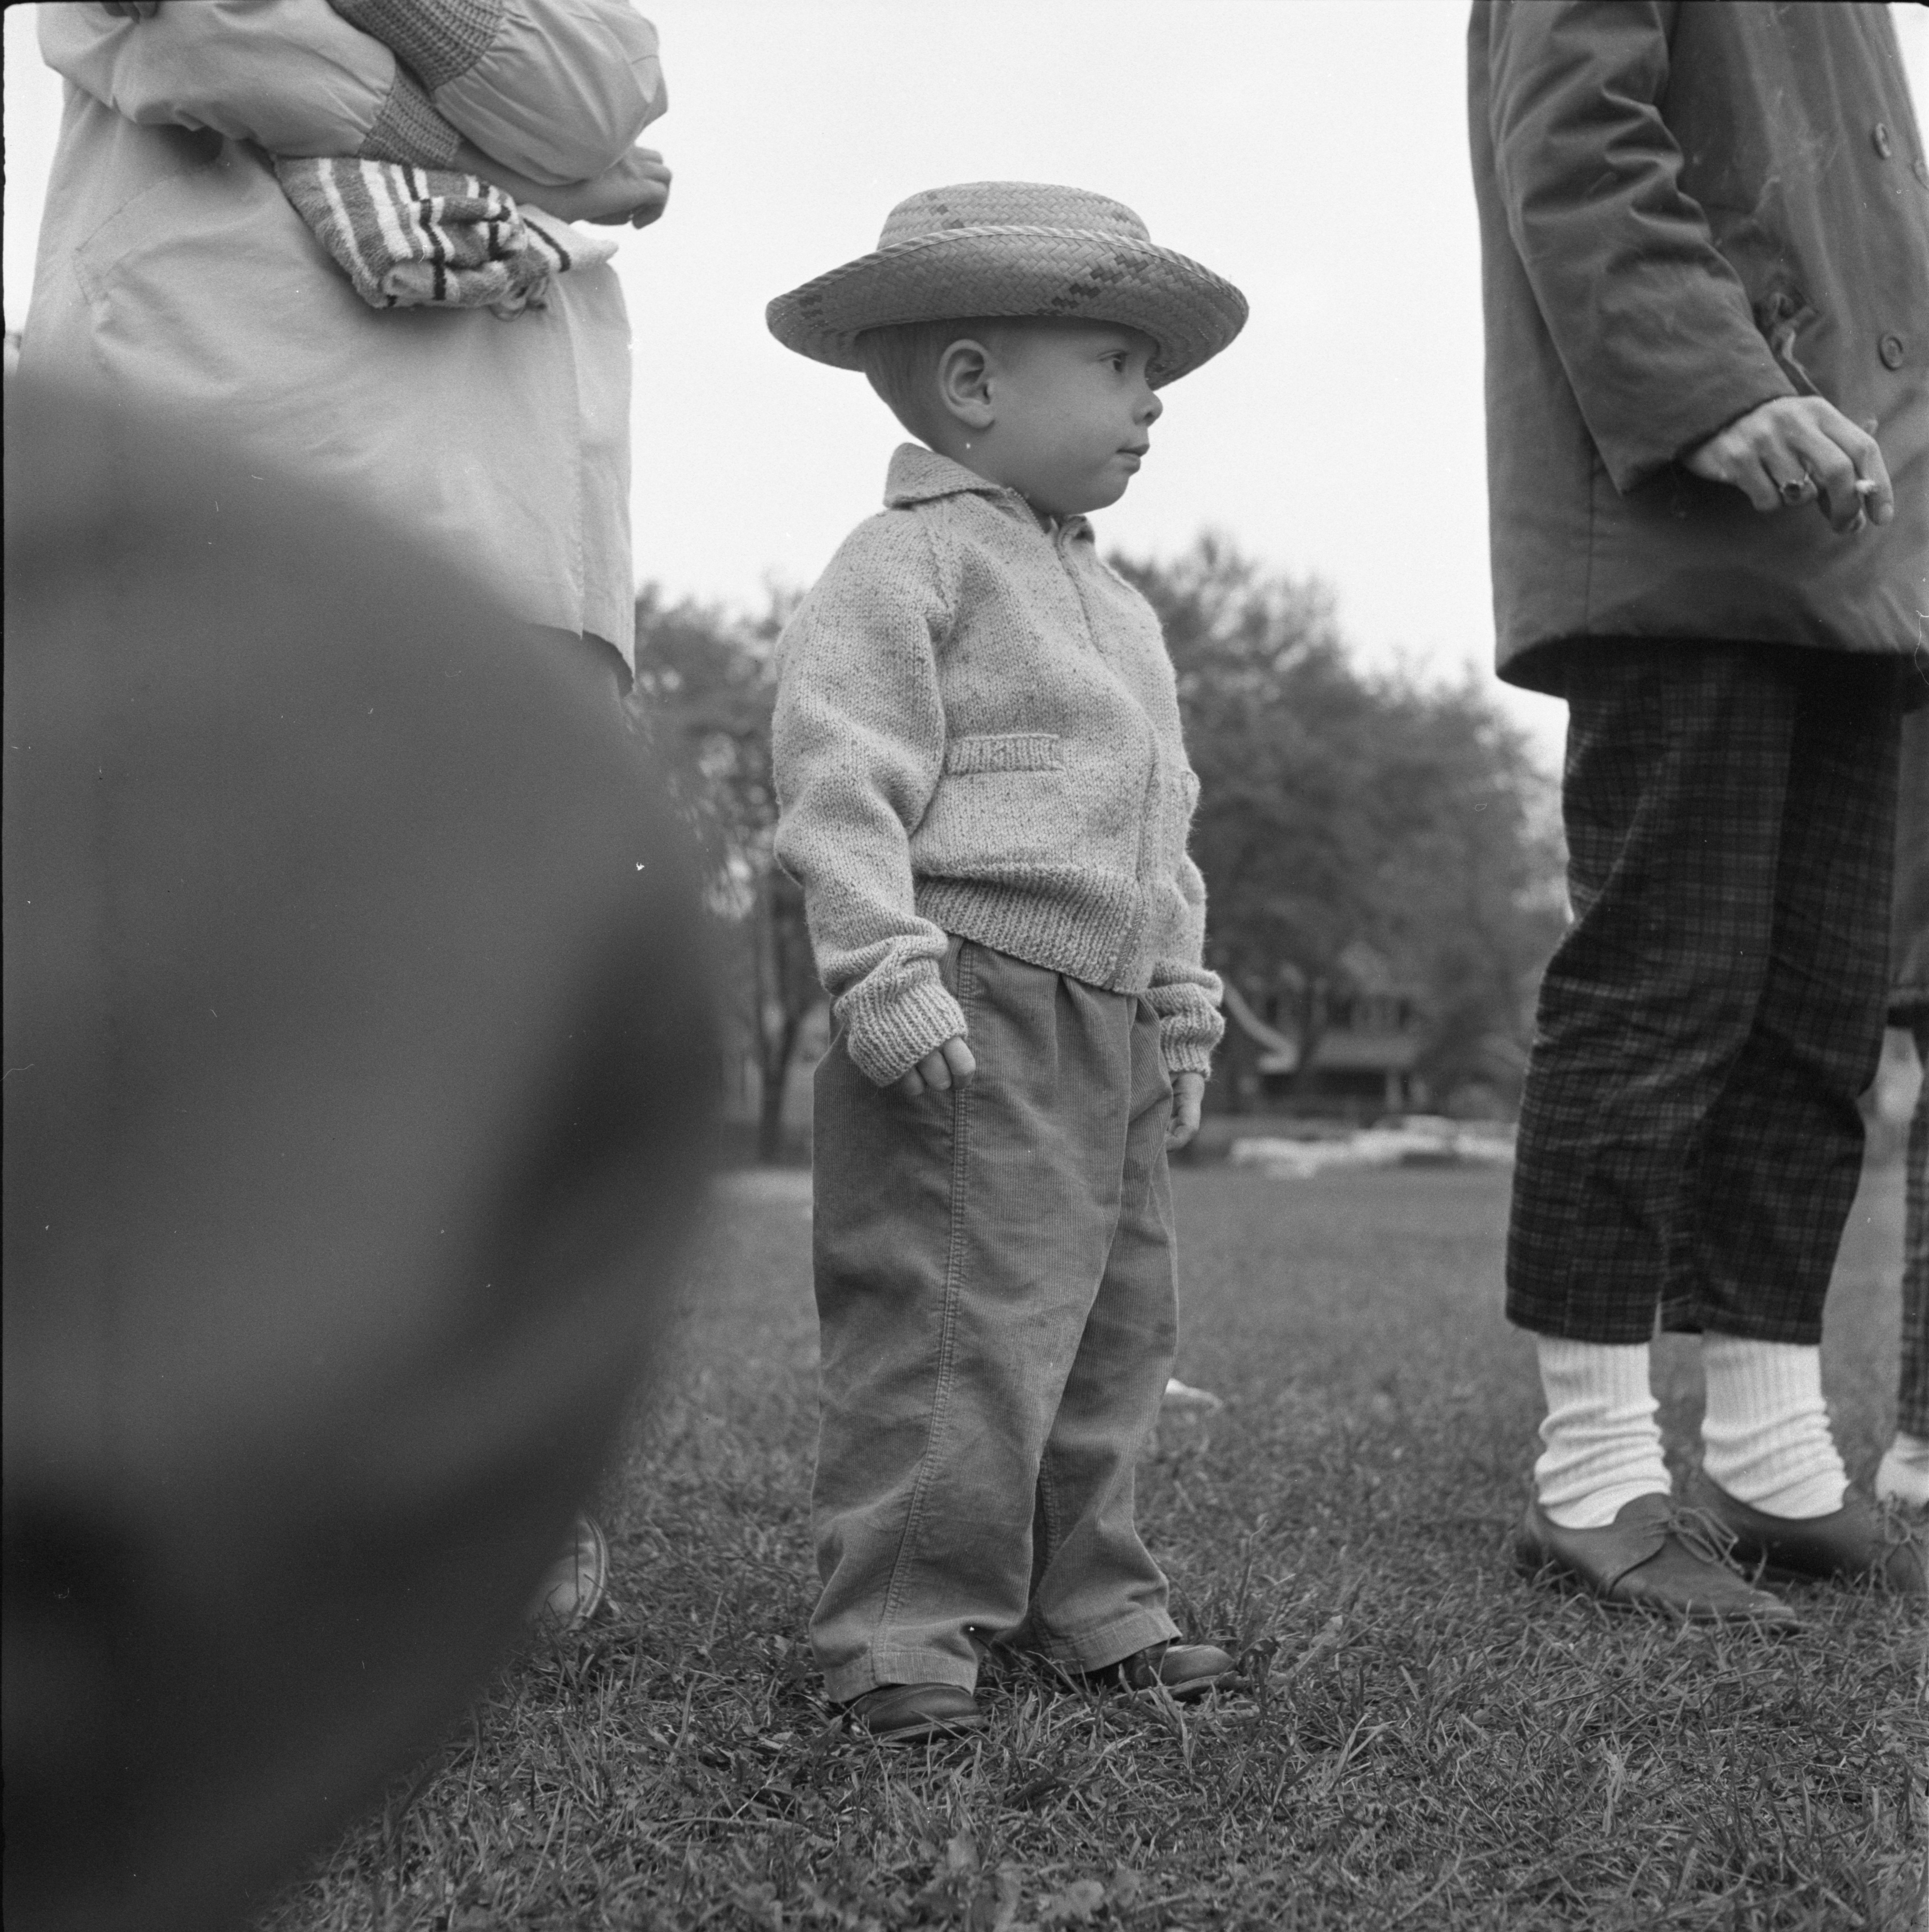 A Young Fan Watches The University of Michigan Marching Band Practice, October 1959 image